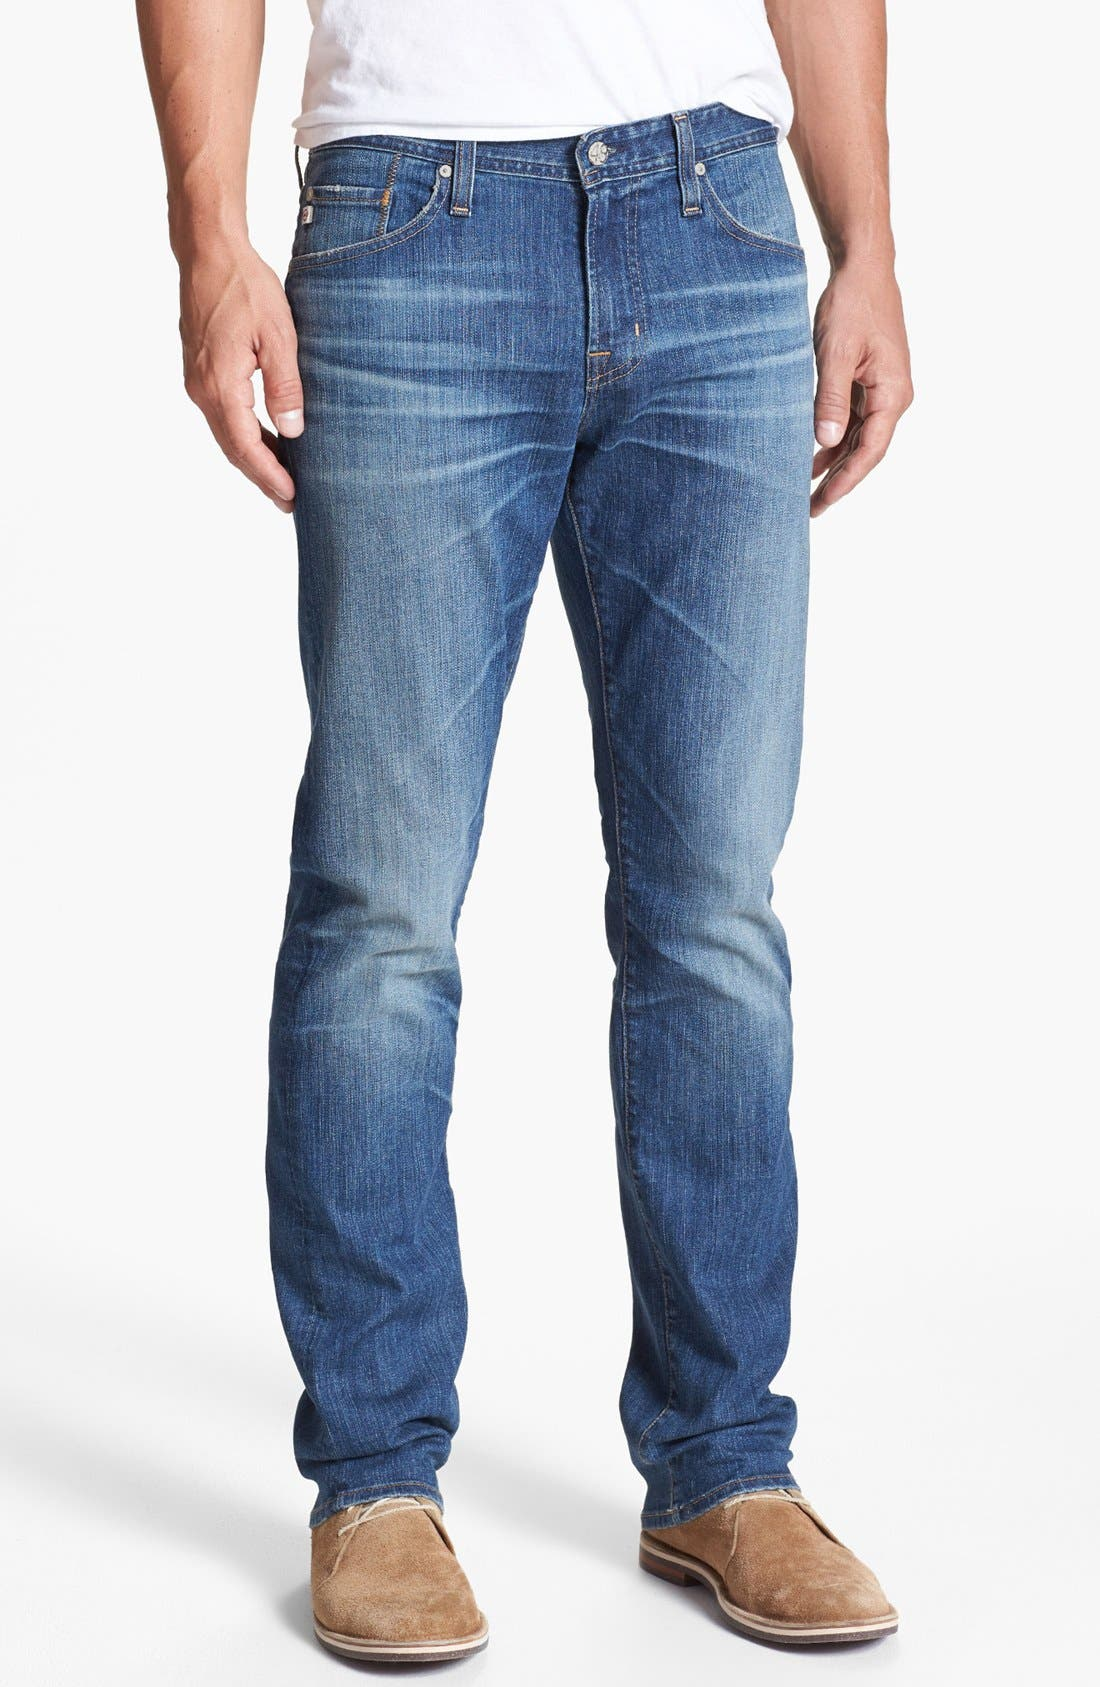 Alternate Image 1 Selected - AG 'Graduate' Tailored Fit Straight Leg Jeans (13 Year Origin)